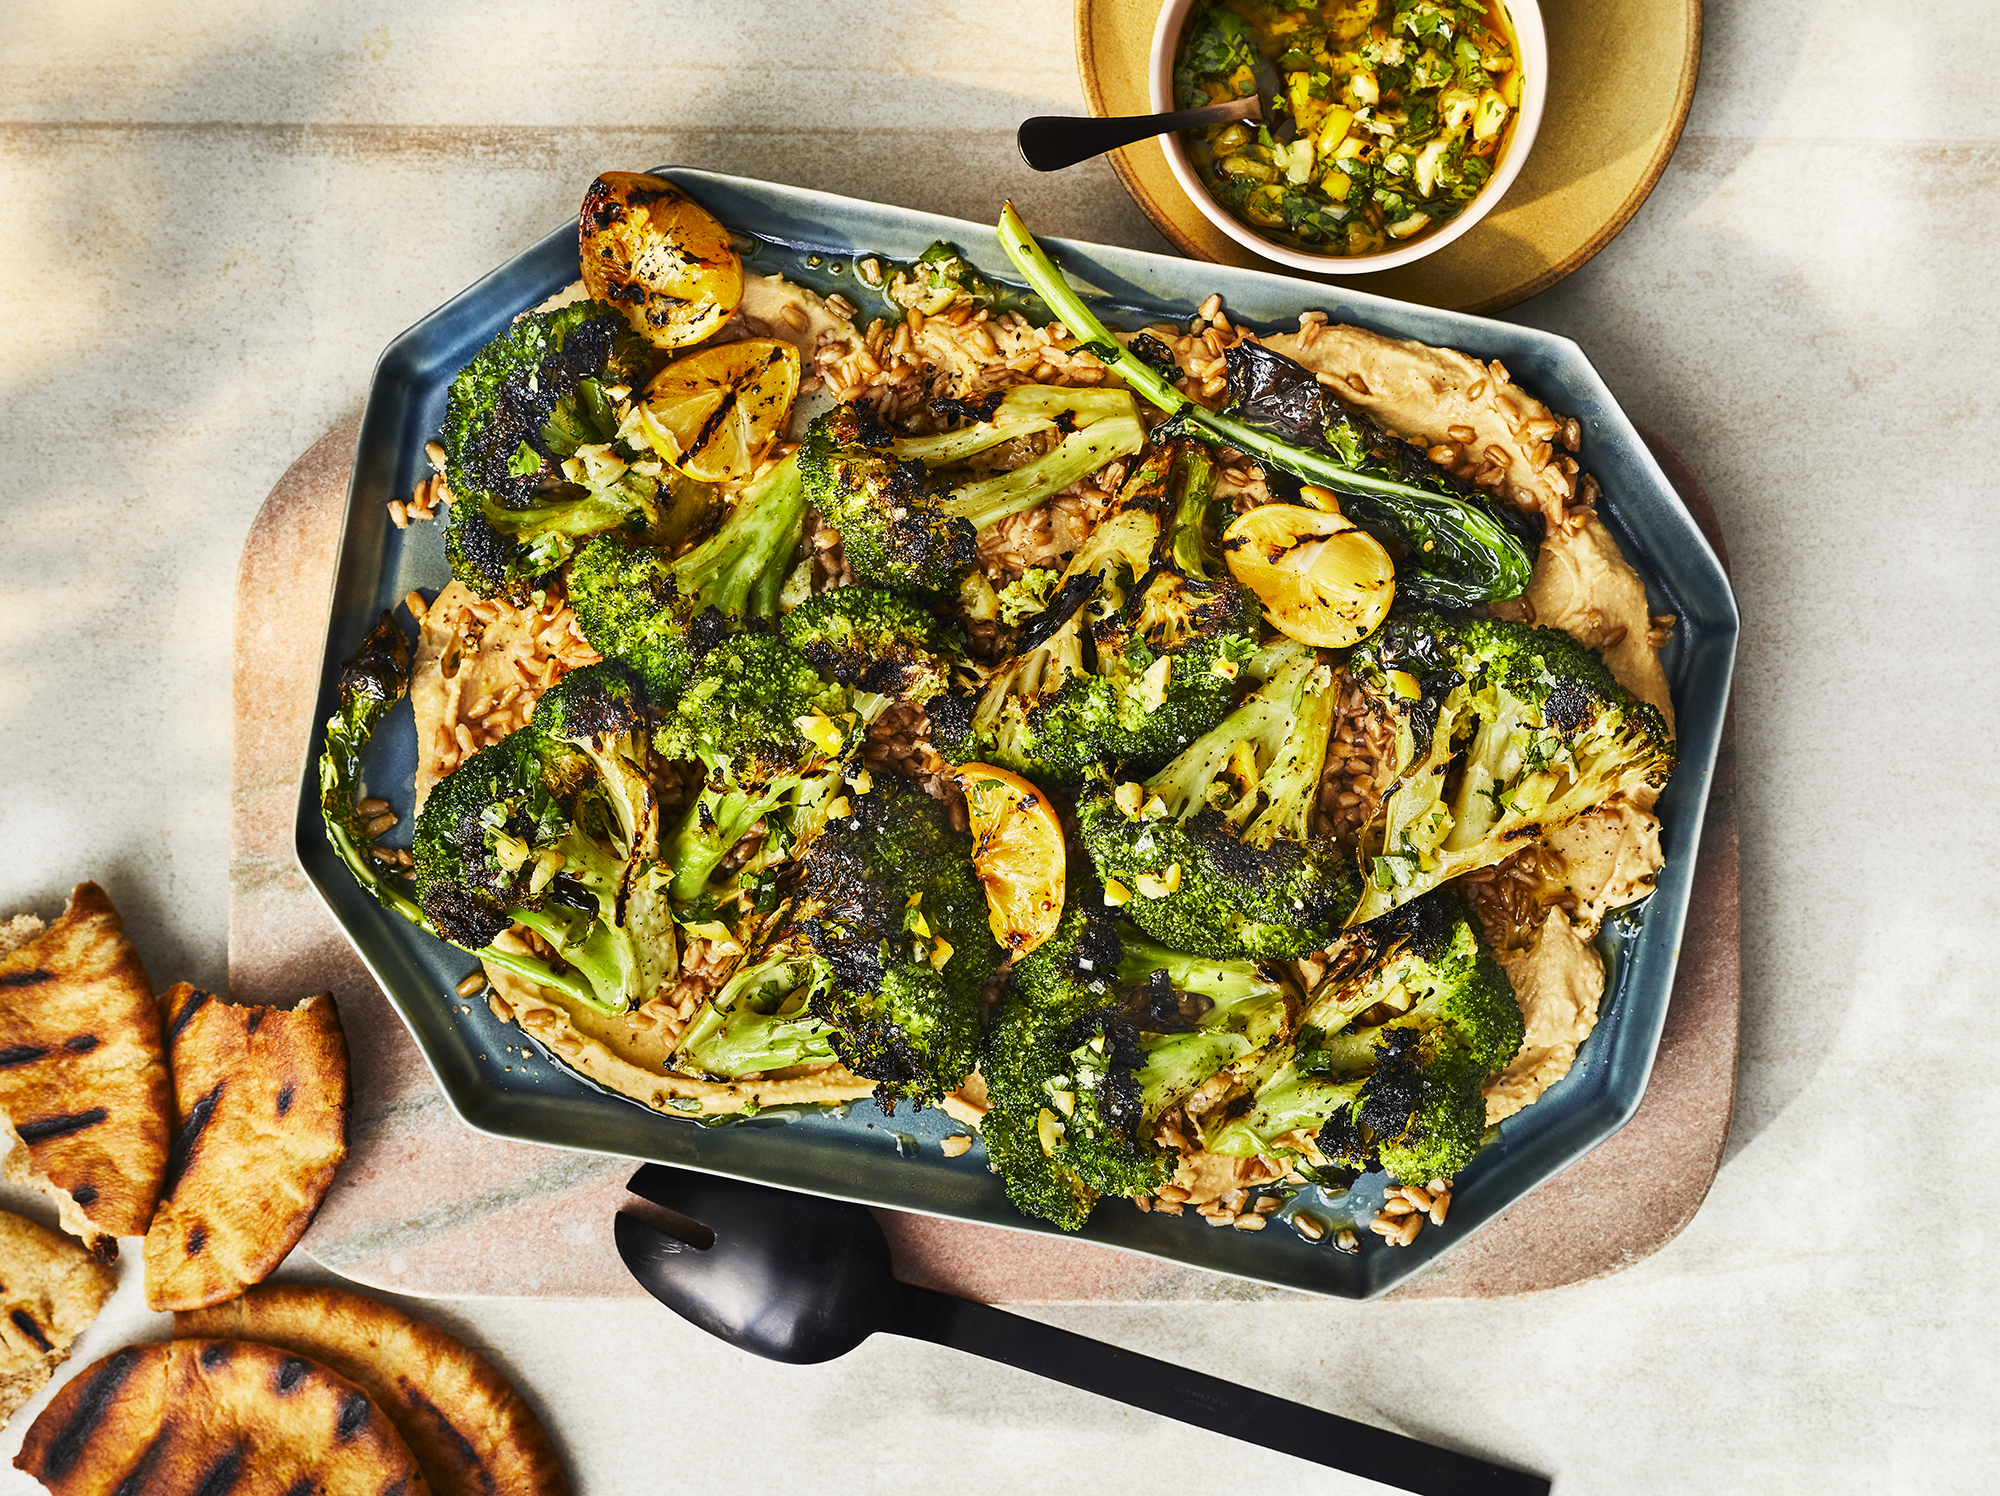 broccoli-grilled-recipes-health-mag-june-2020